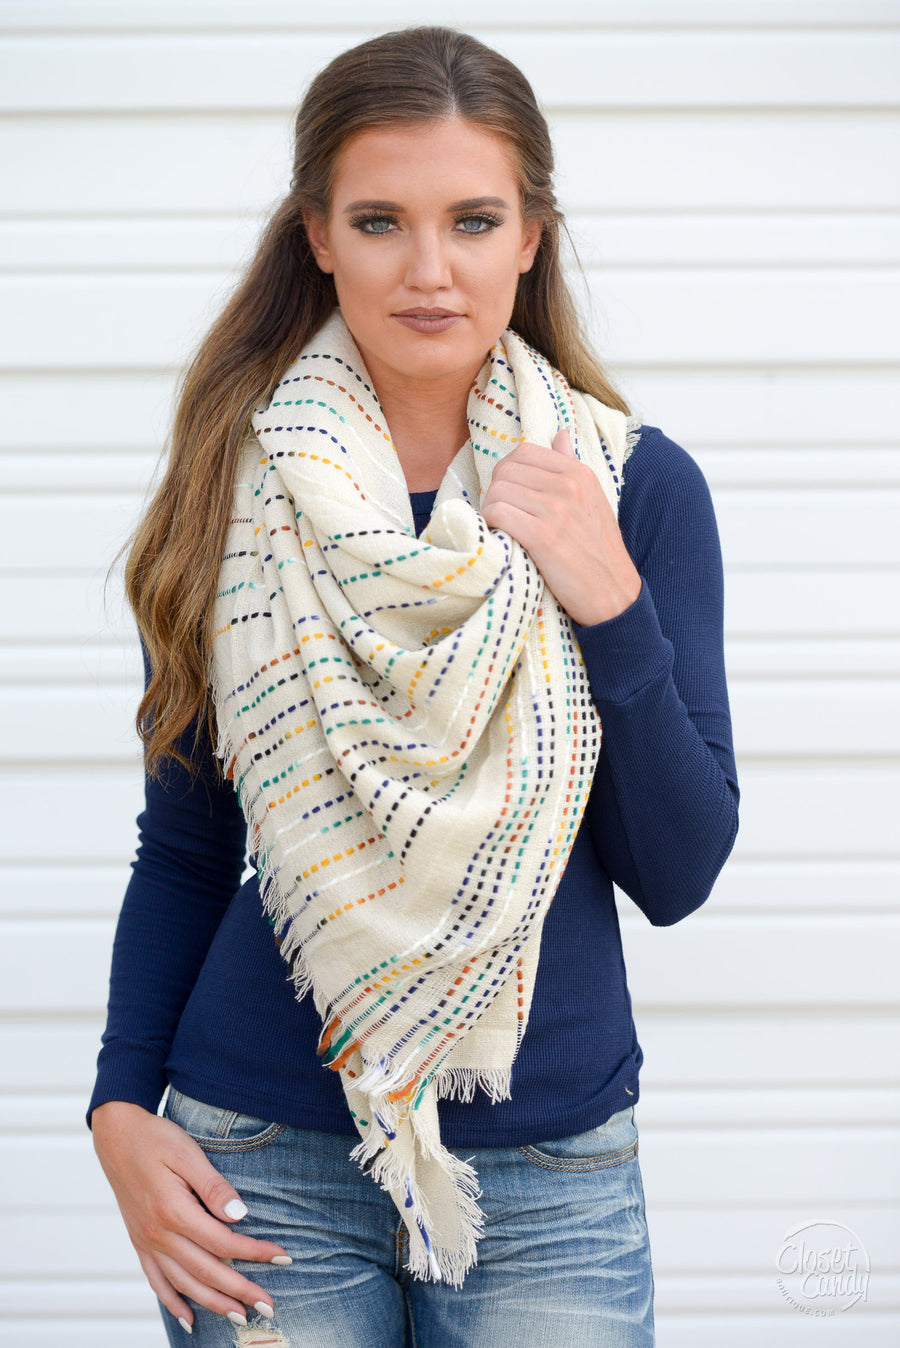 Top It Off Blanket Scarf - pretty multi-colored yarn blanket scarf, Closet Candy Boutique